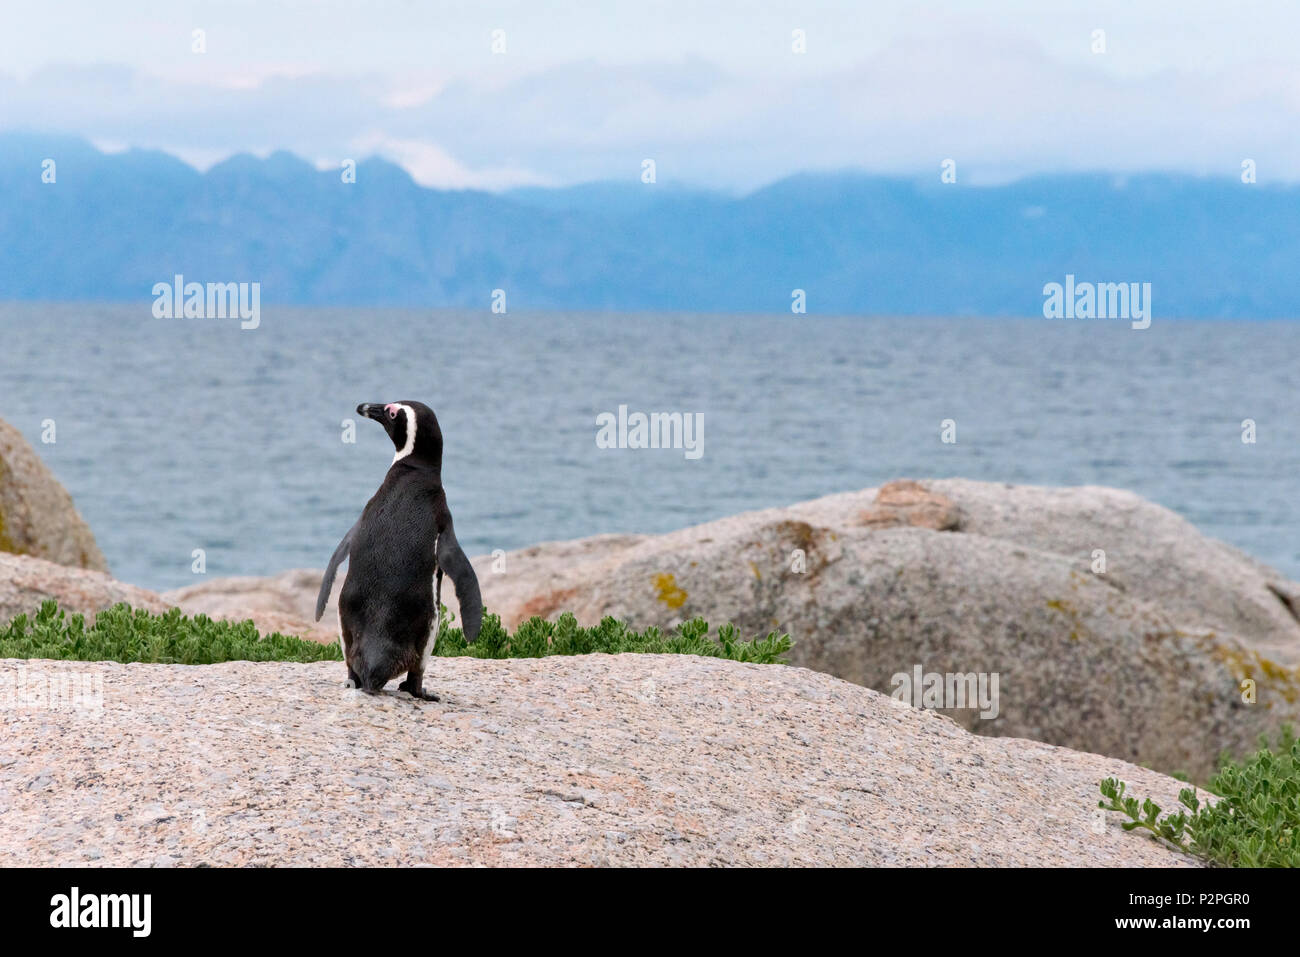 African penguin, Simon's Town, South Africa Stock Photo